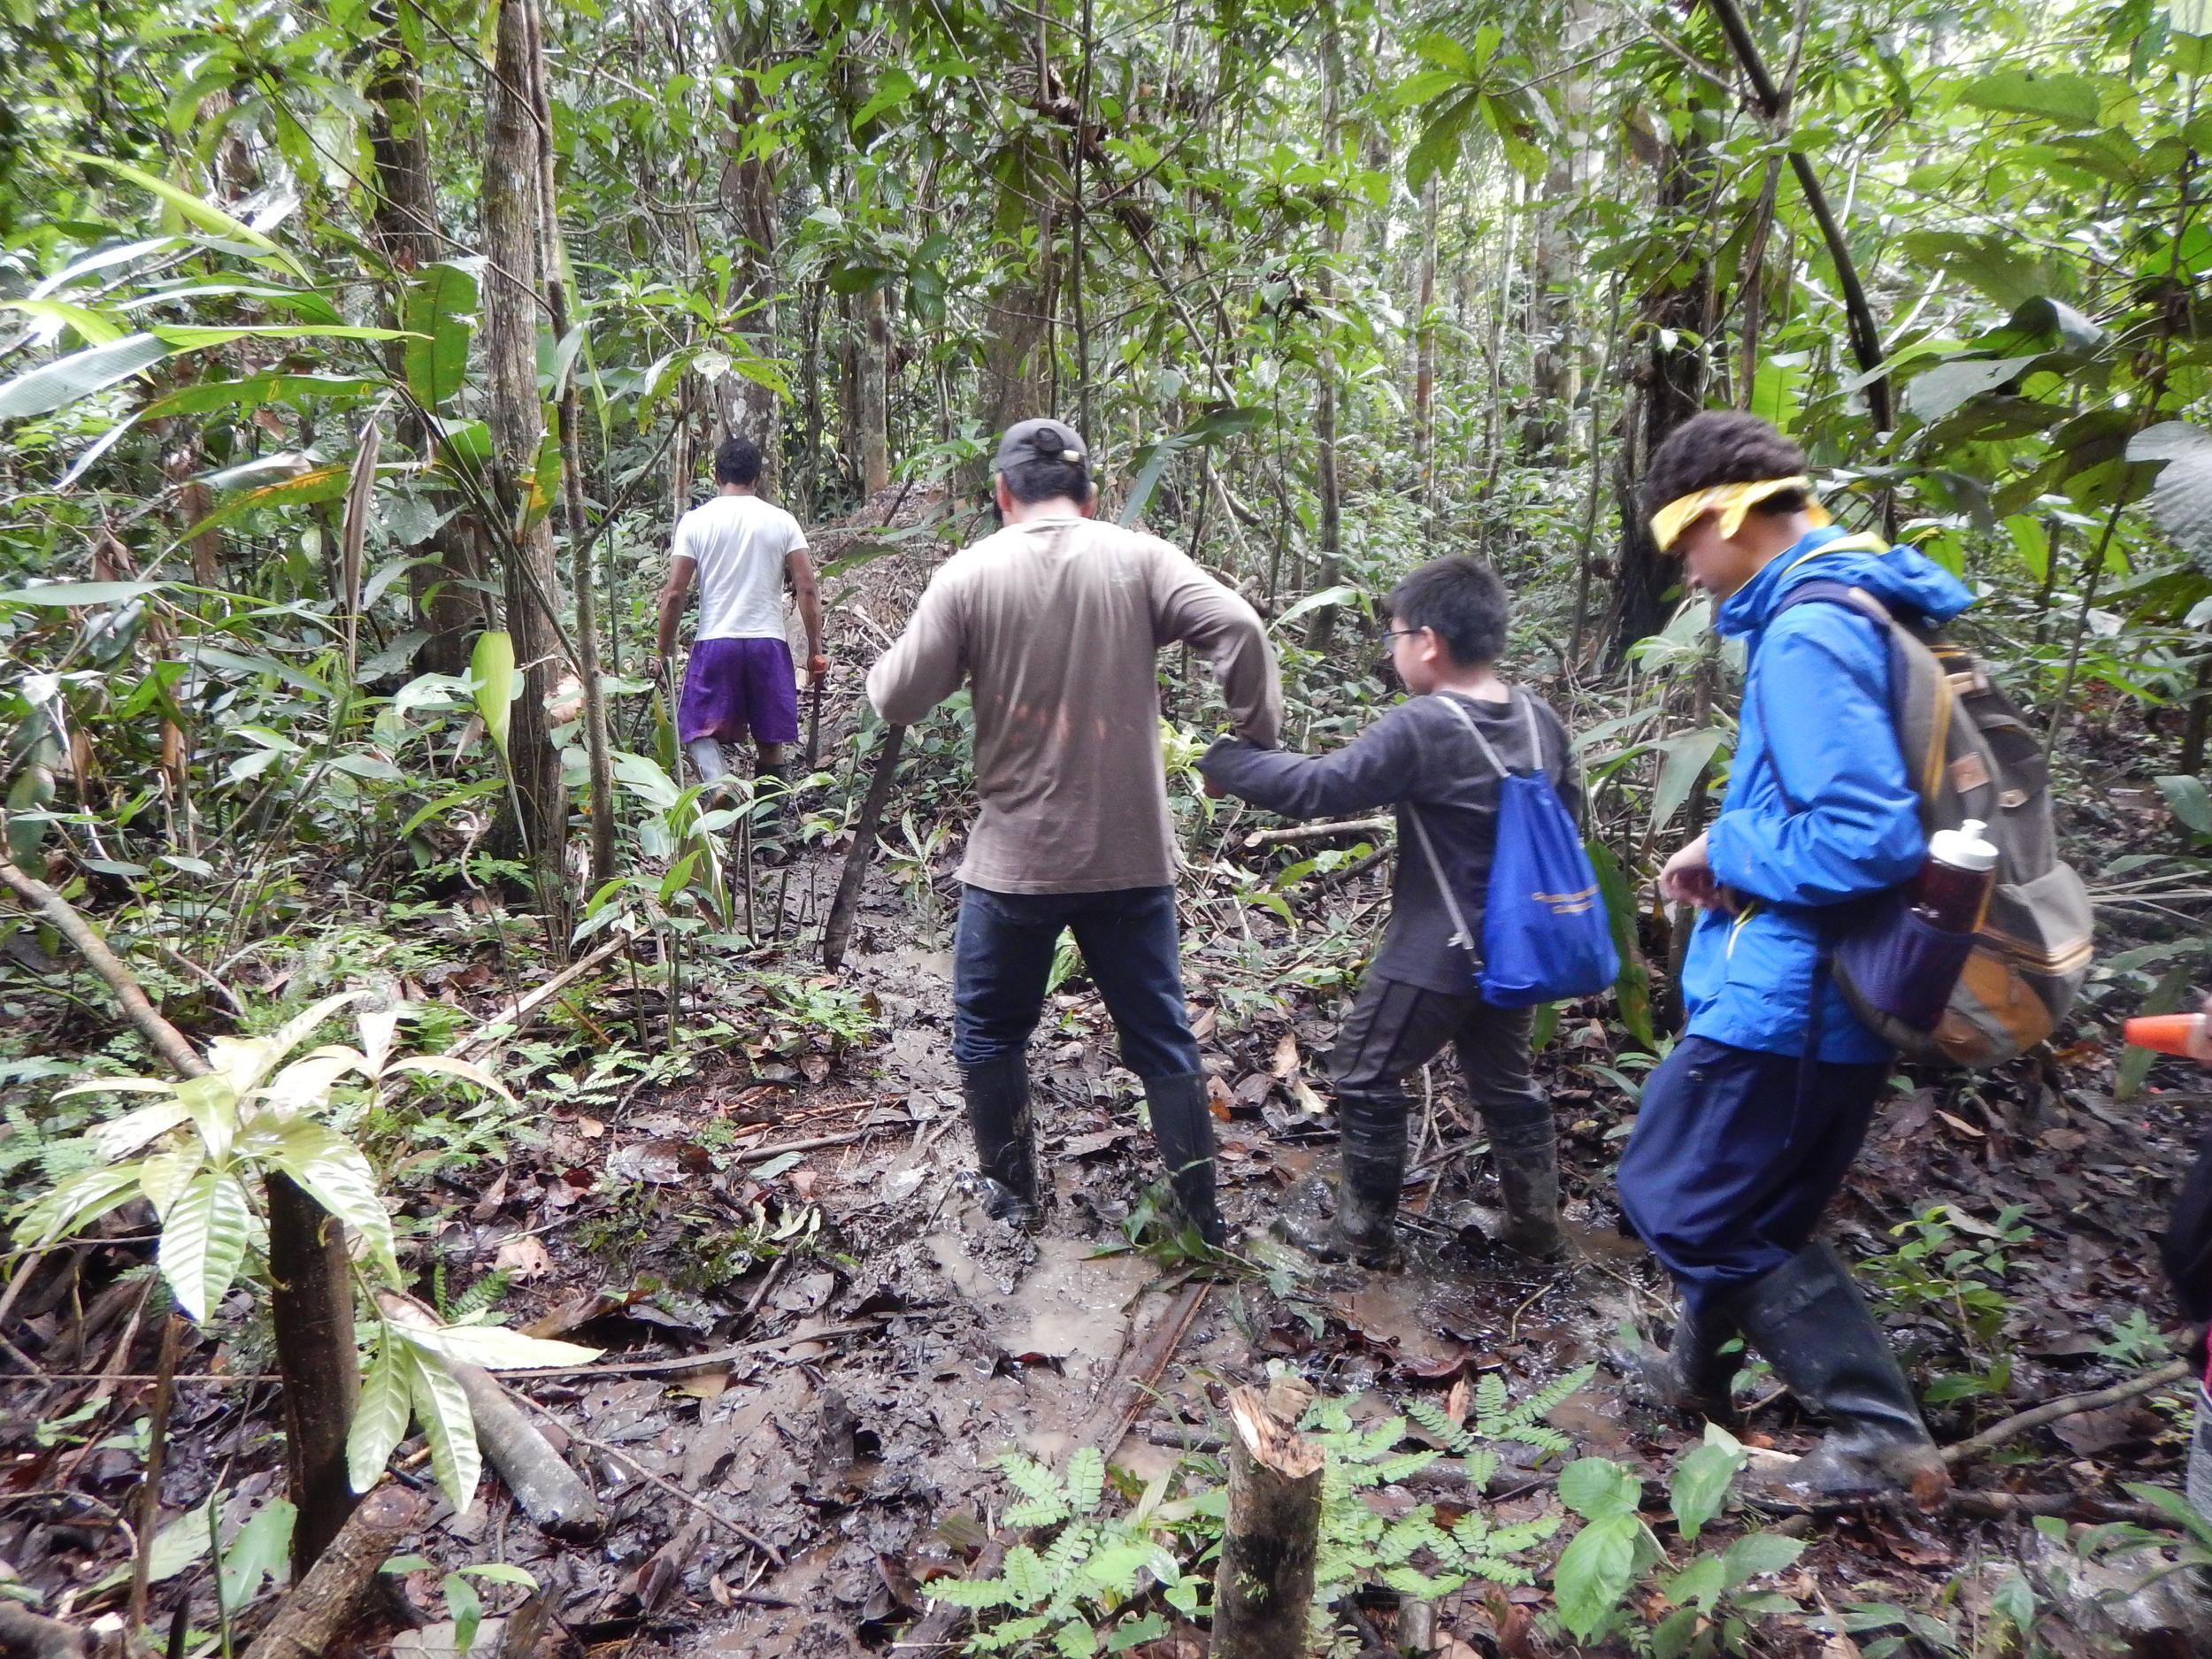 Hiking in the rainforest to explore plant and animal life